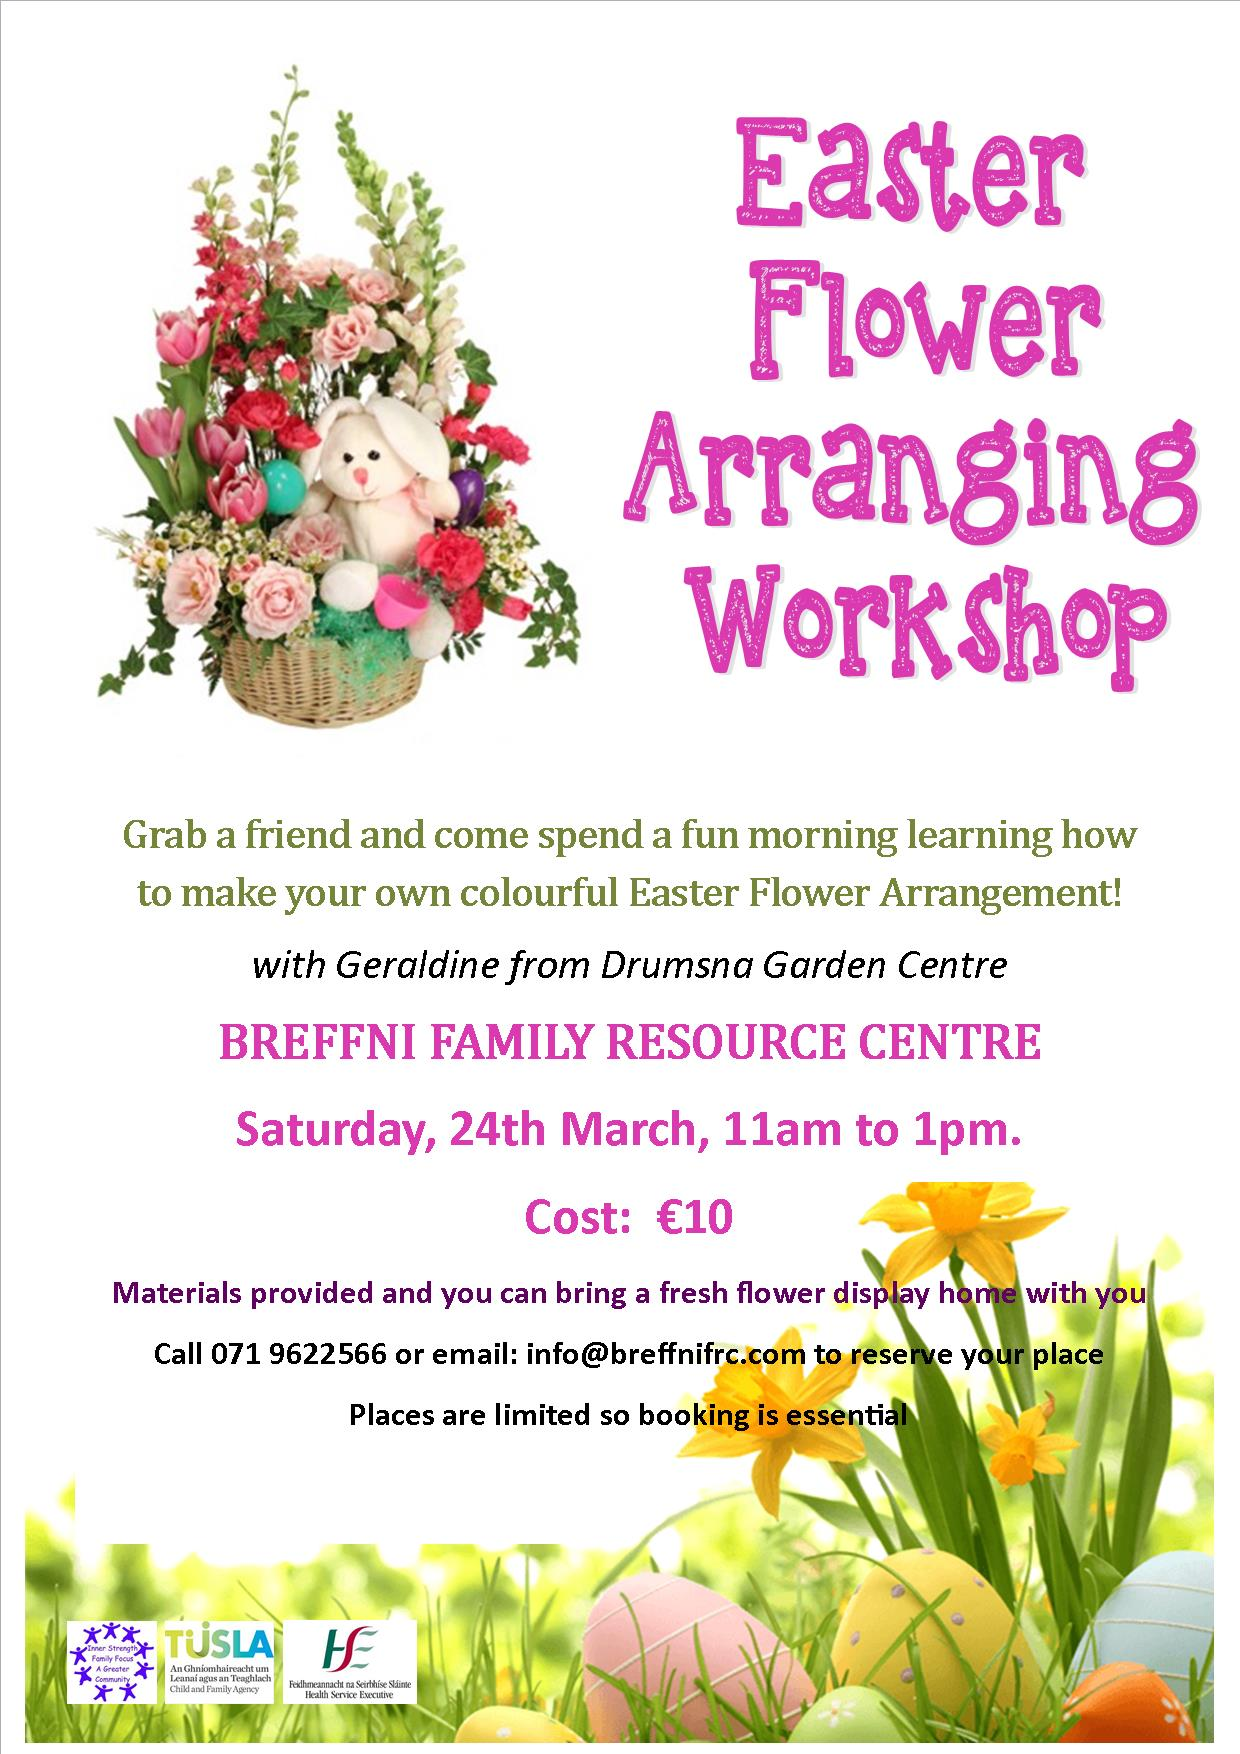 MyCarrick Event - Breffni Family Resource Centre - Easter Flower Arranging